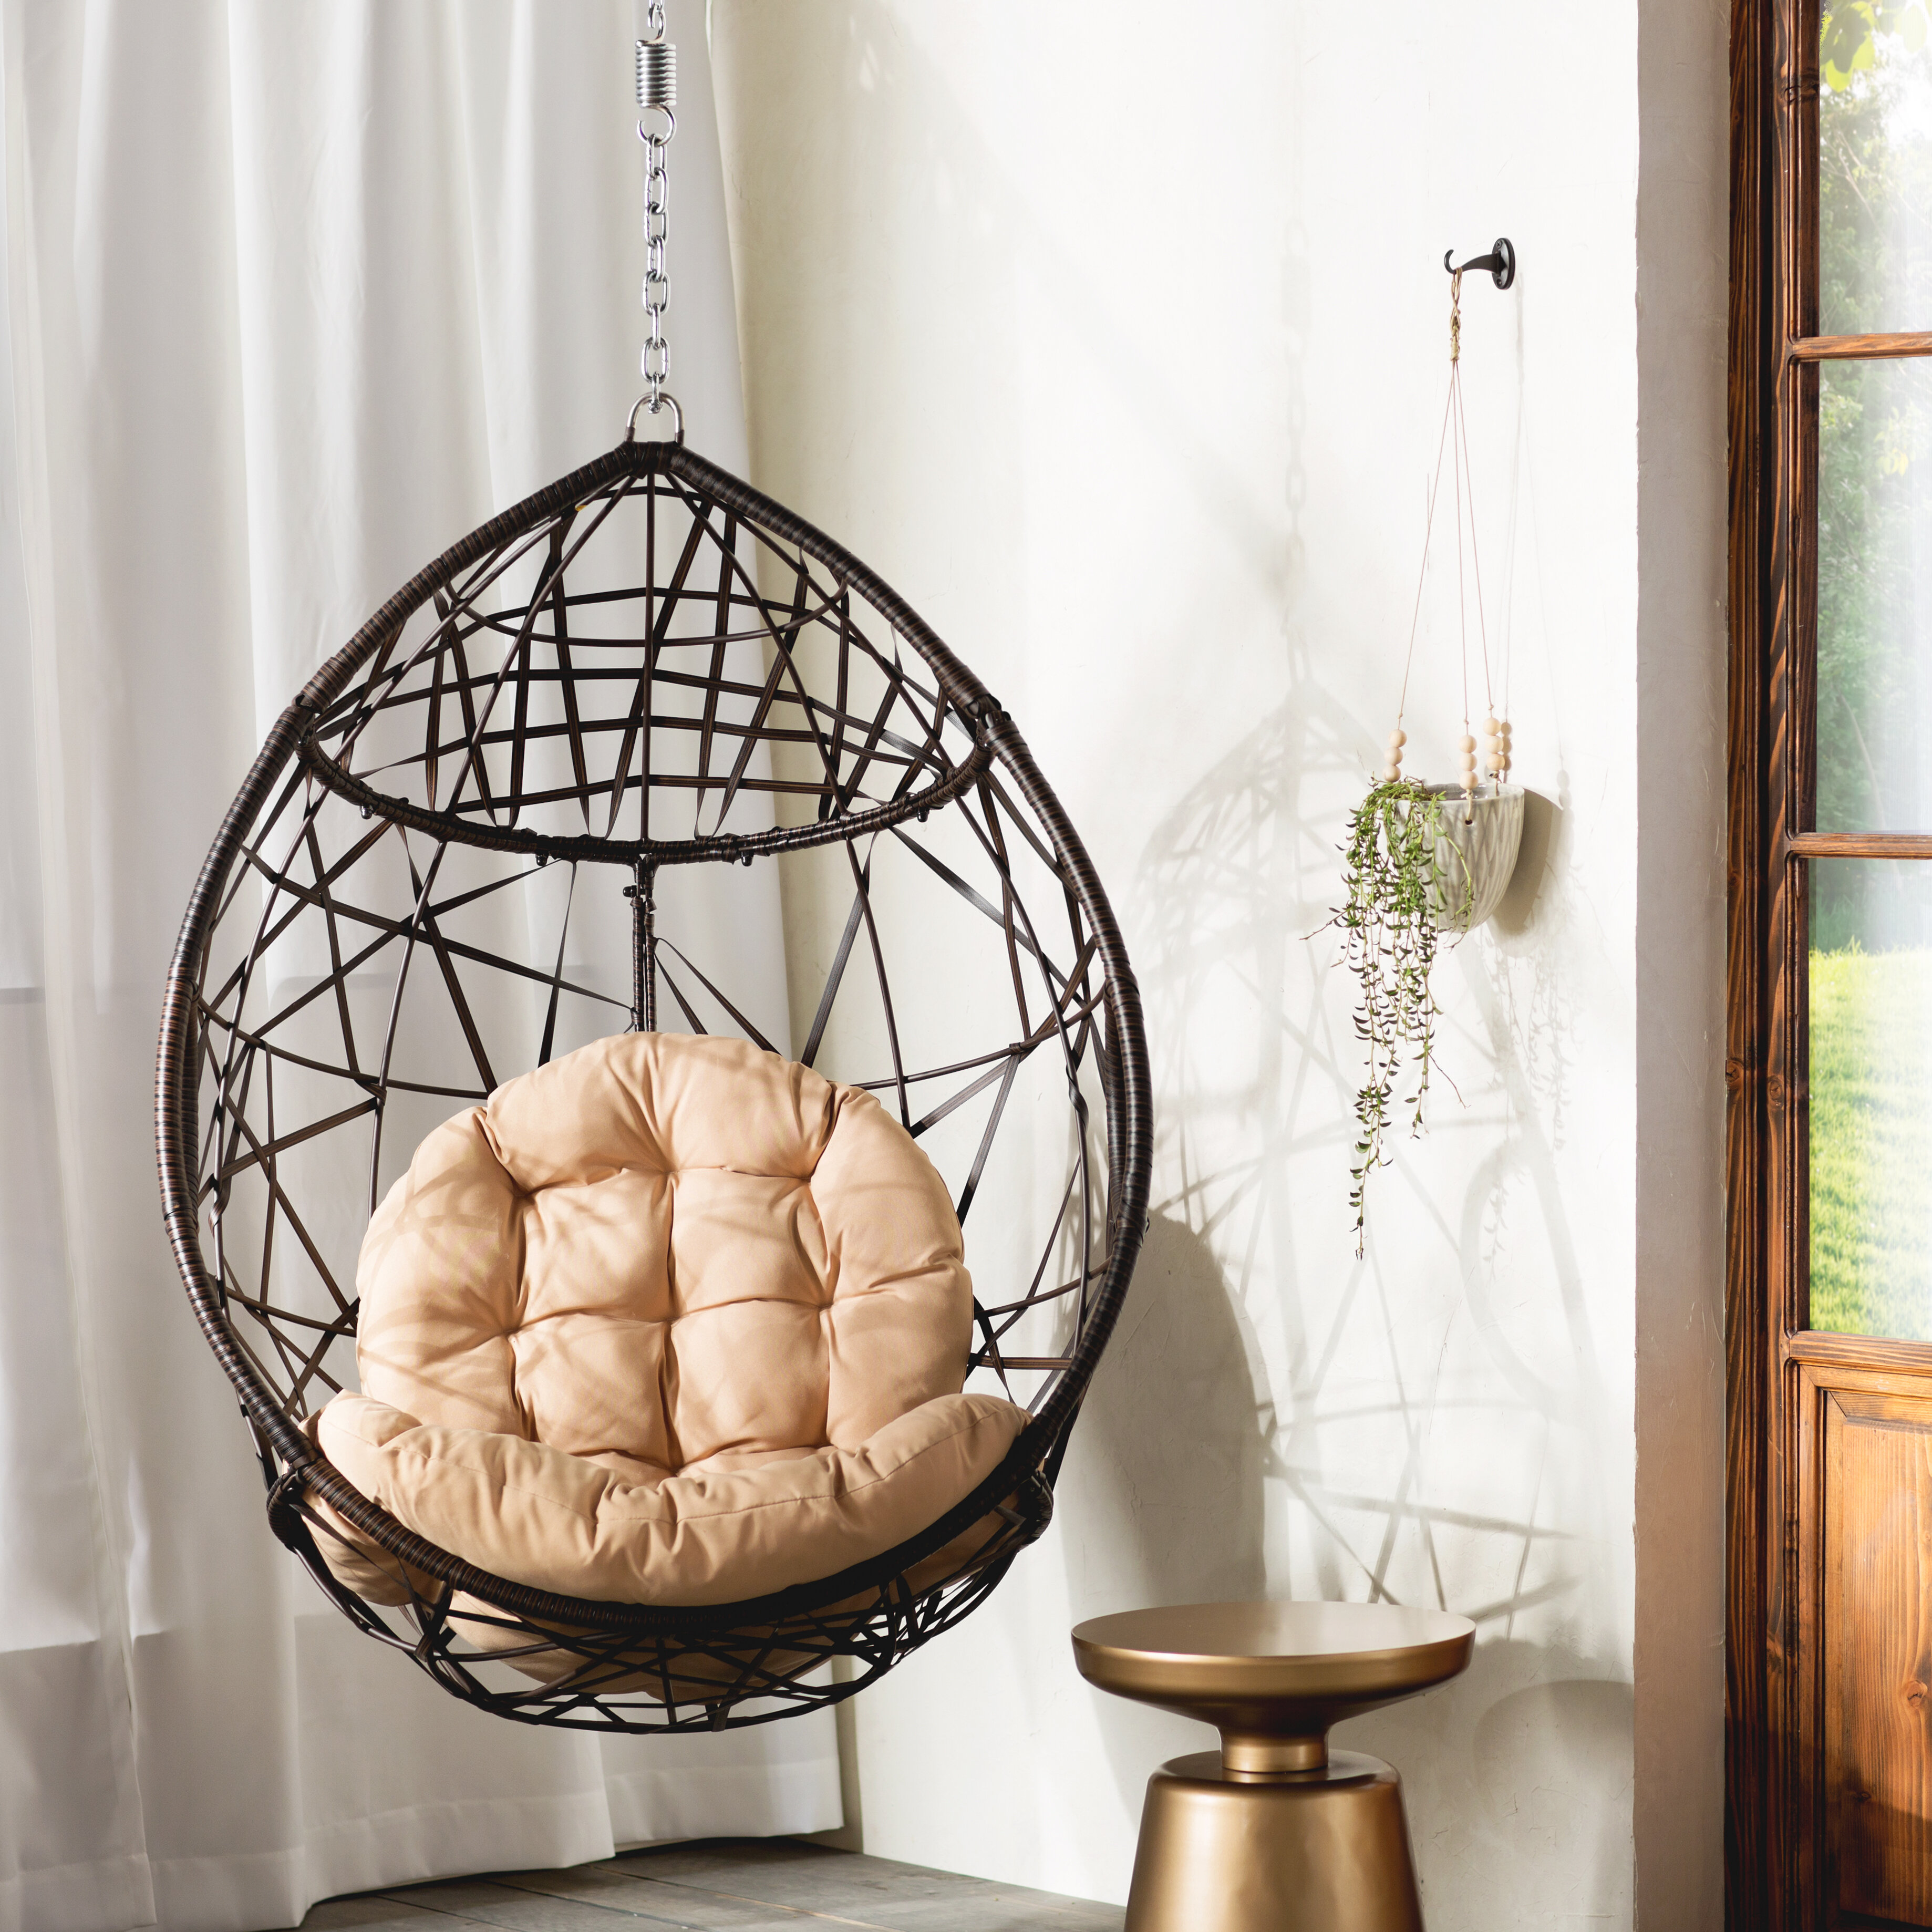 Delicieux Destiny Tear Drop PVC Swing Chair With Stand